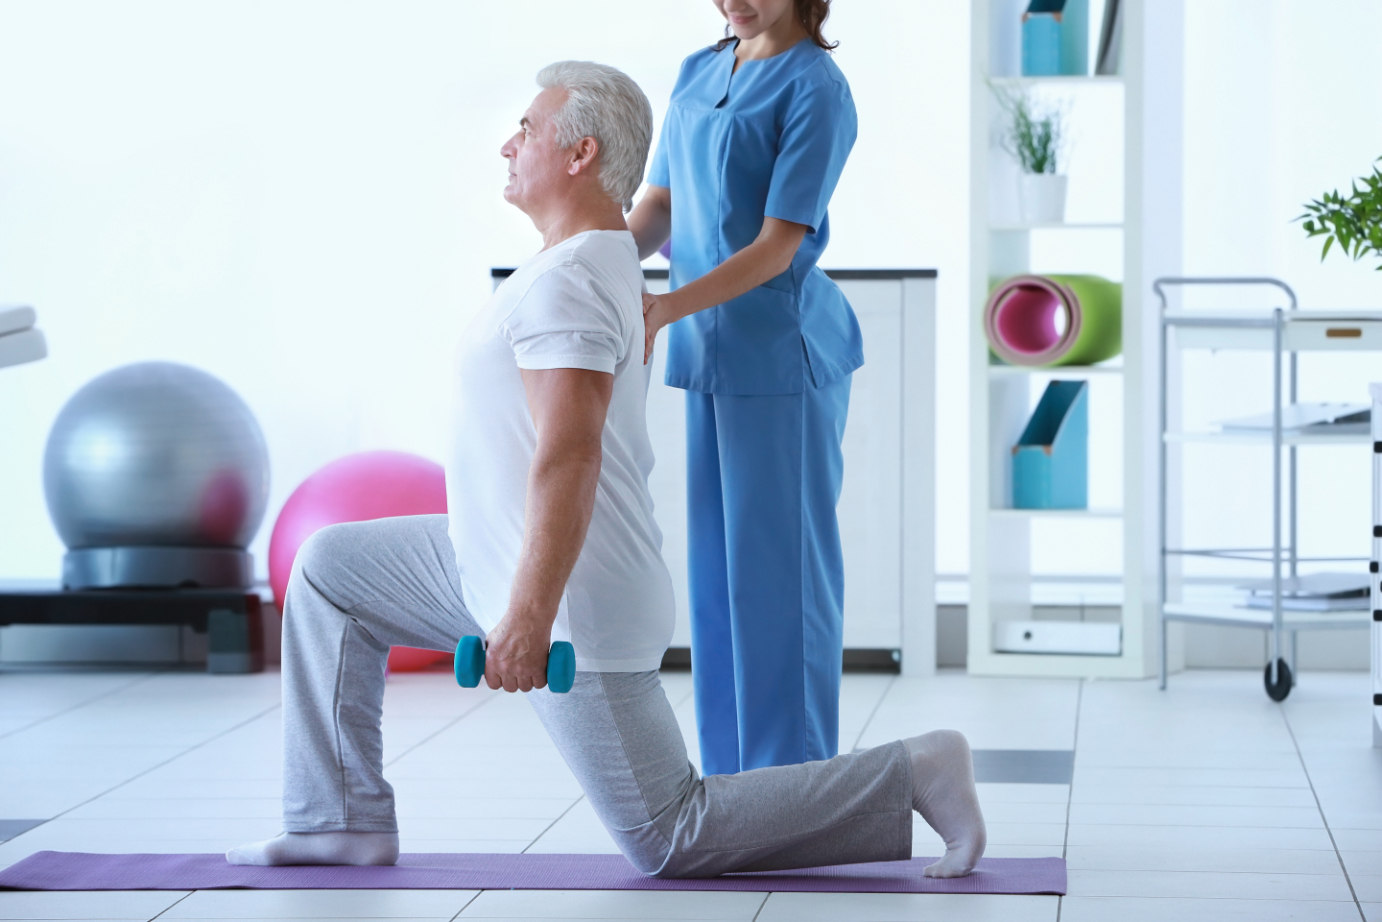 Physical therapist helping osteoporosis patient